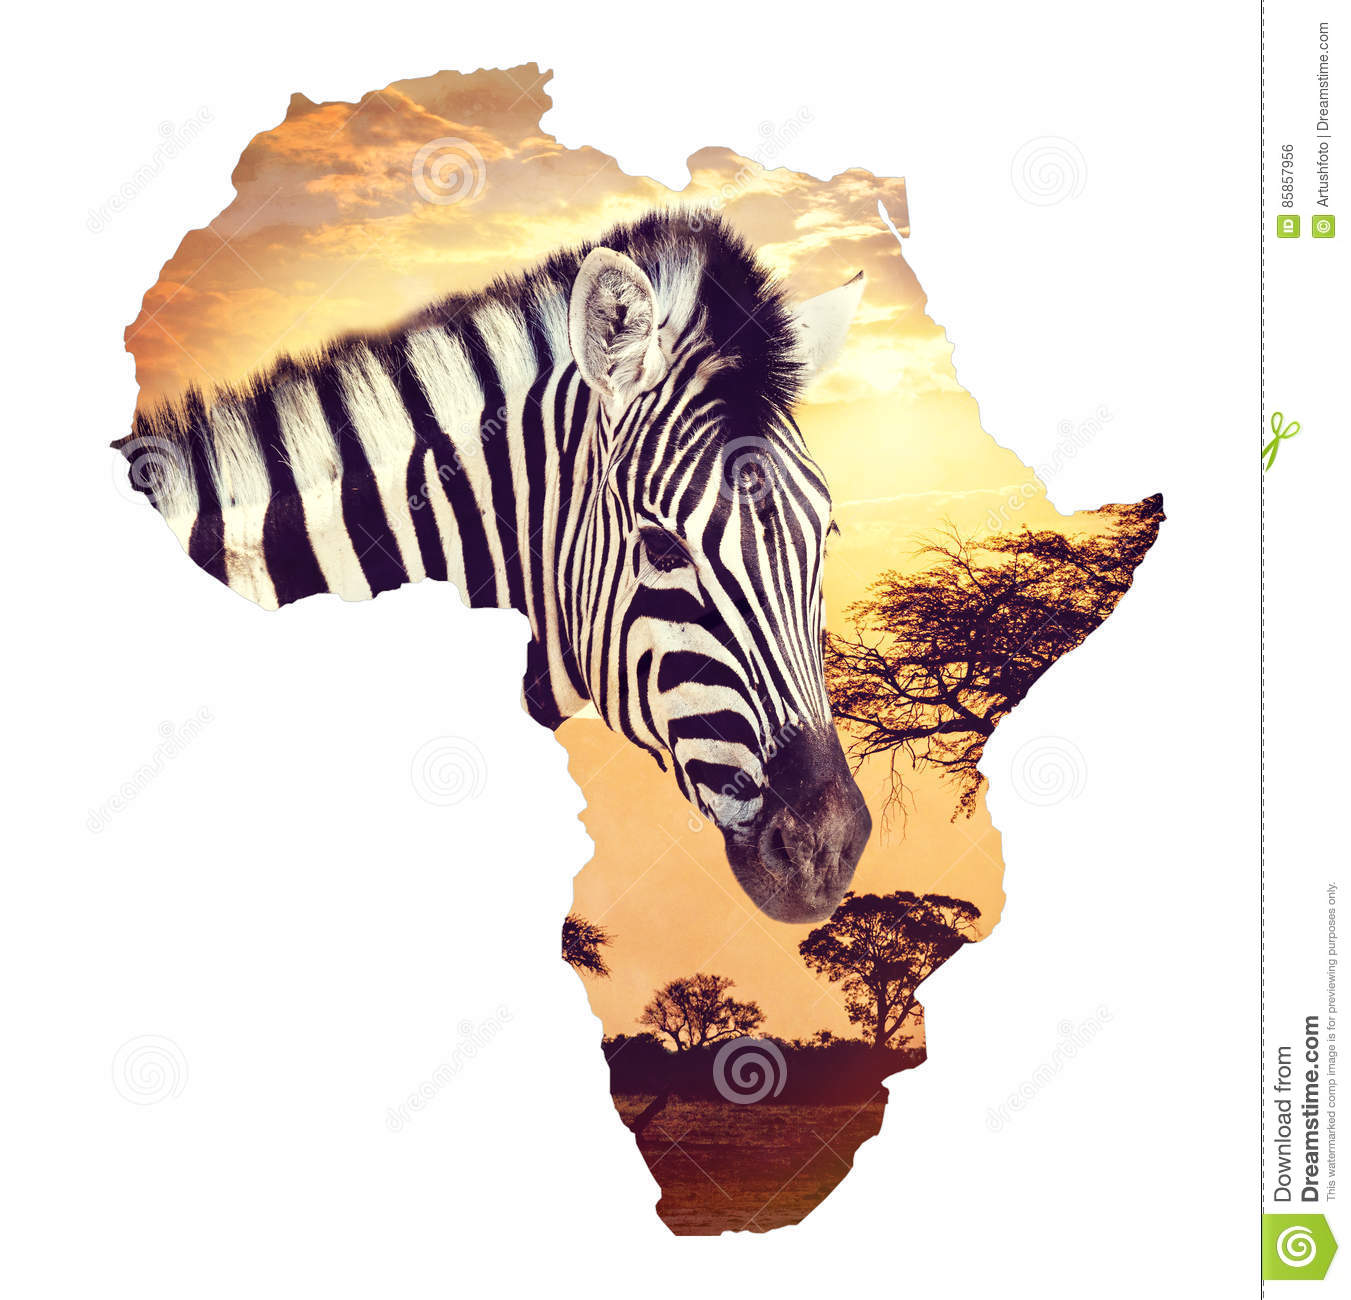 Zebra portrait on african sunset with acacia background. Map, continent of africa. Wildlife and wilderness Map of africa concept